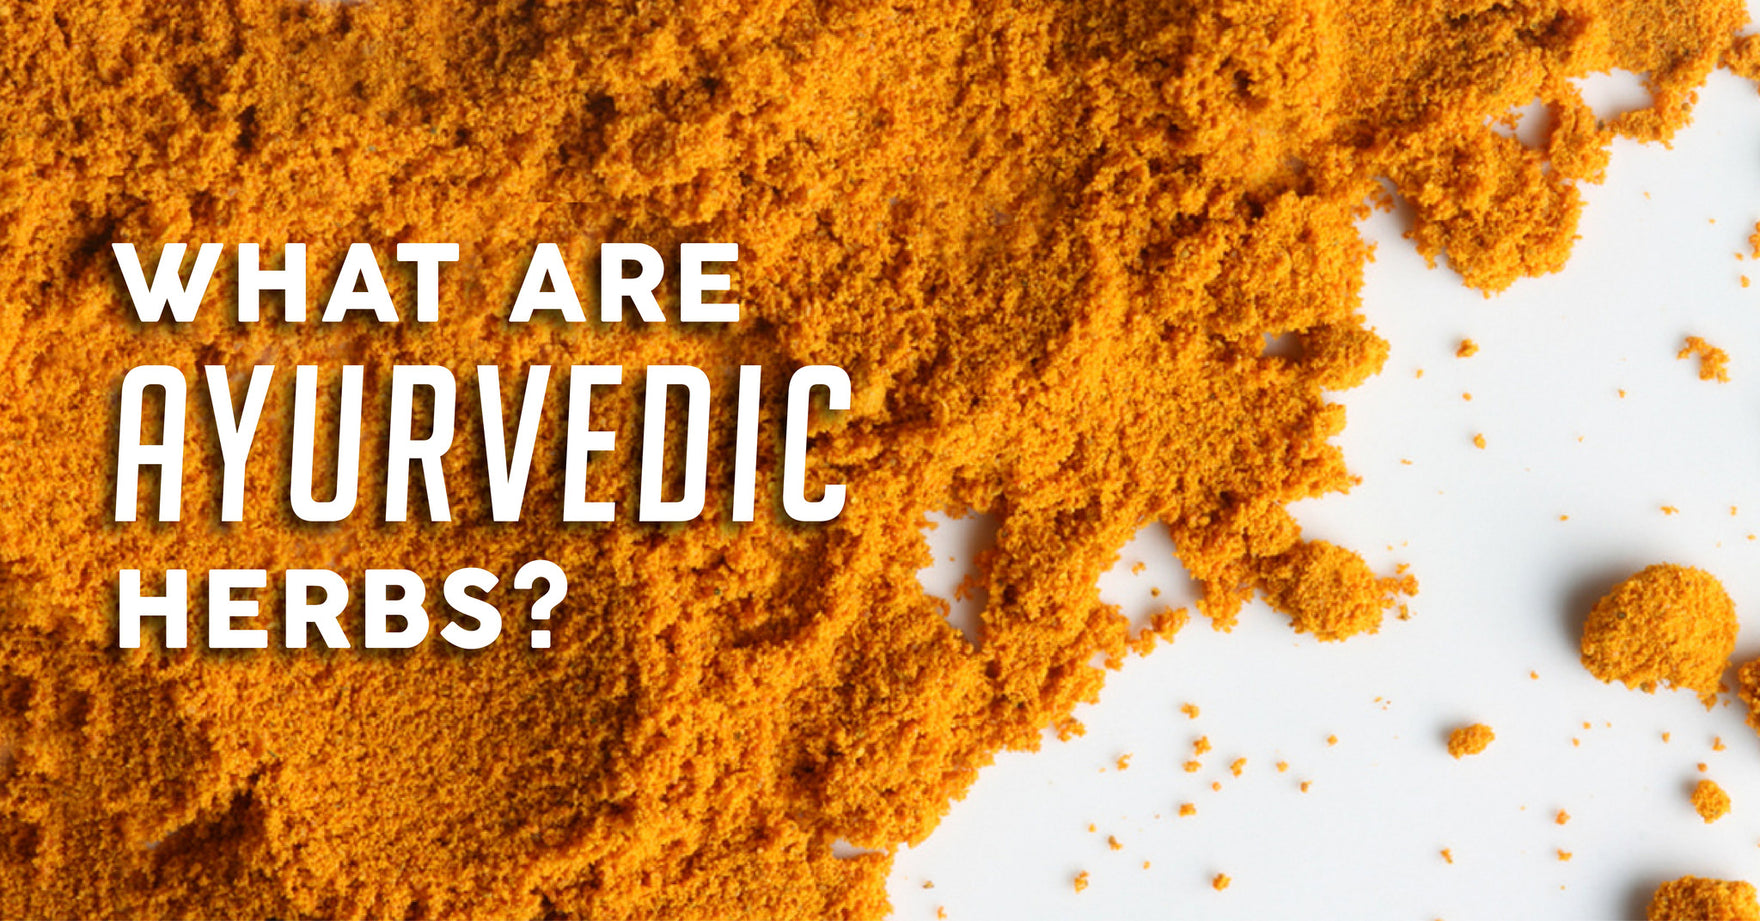 What are Ayurvedic Herbs?